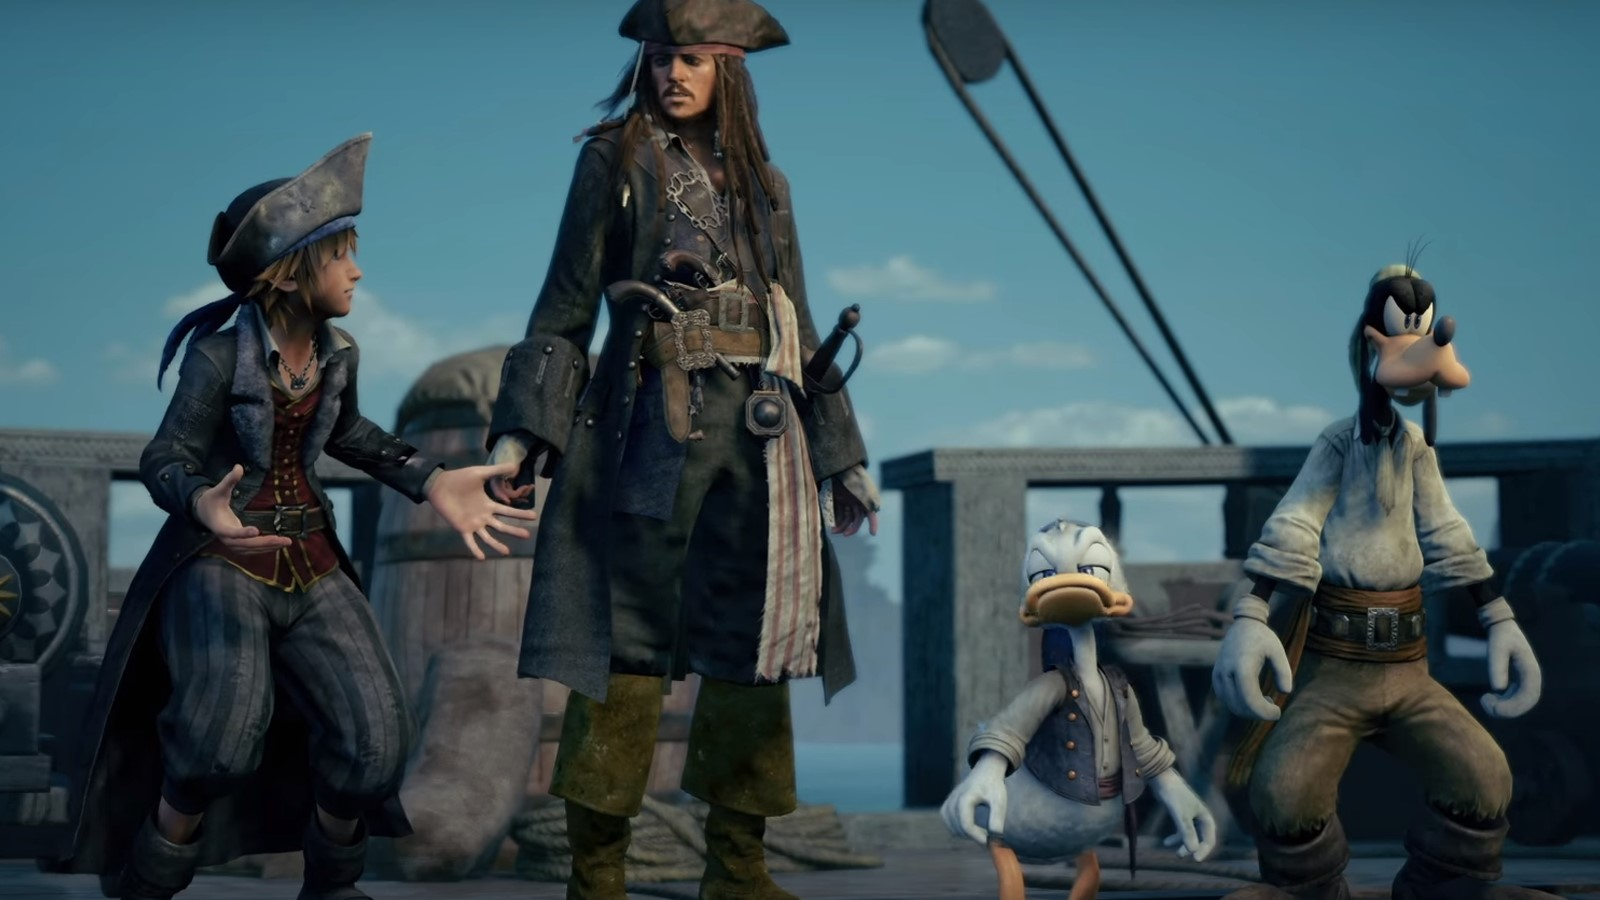 Sora and Jack sparrow